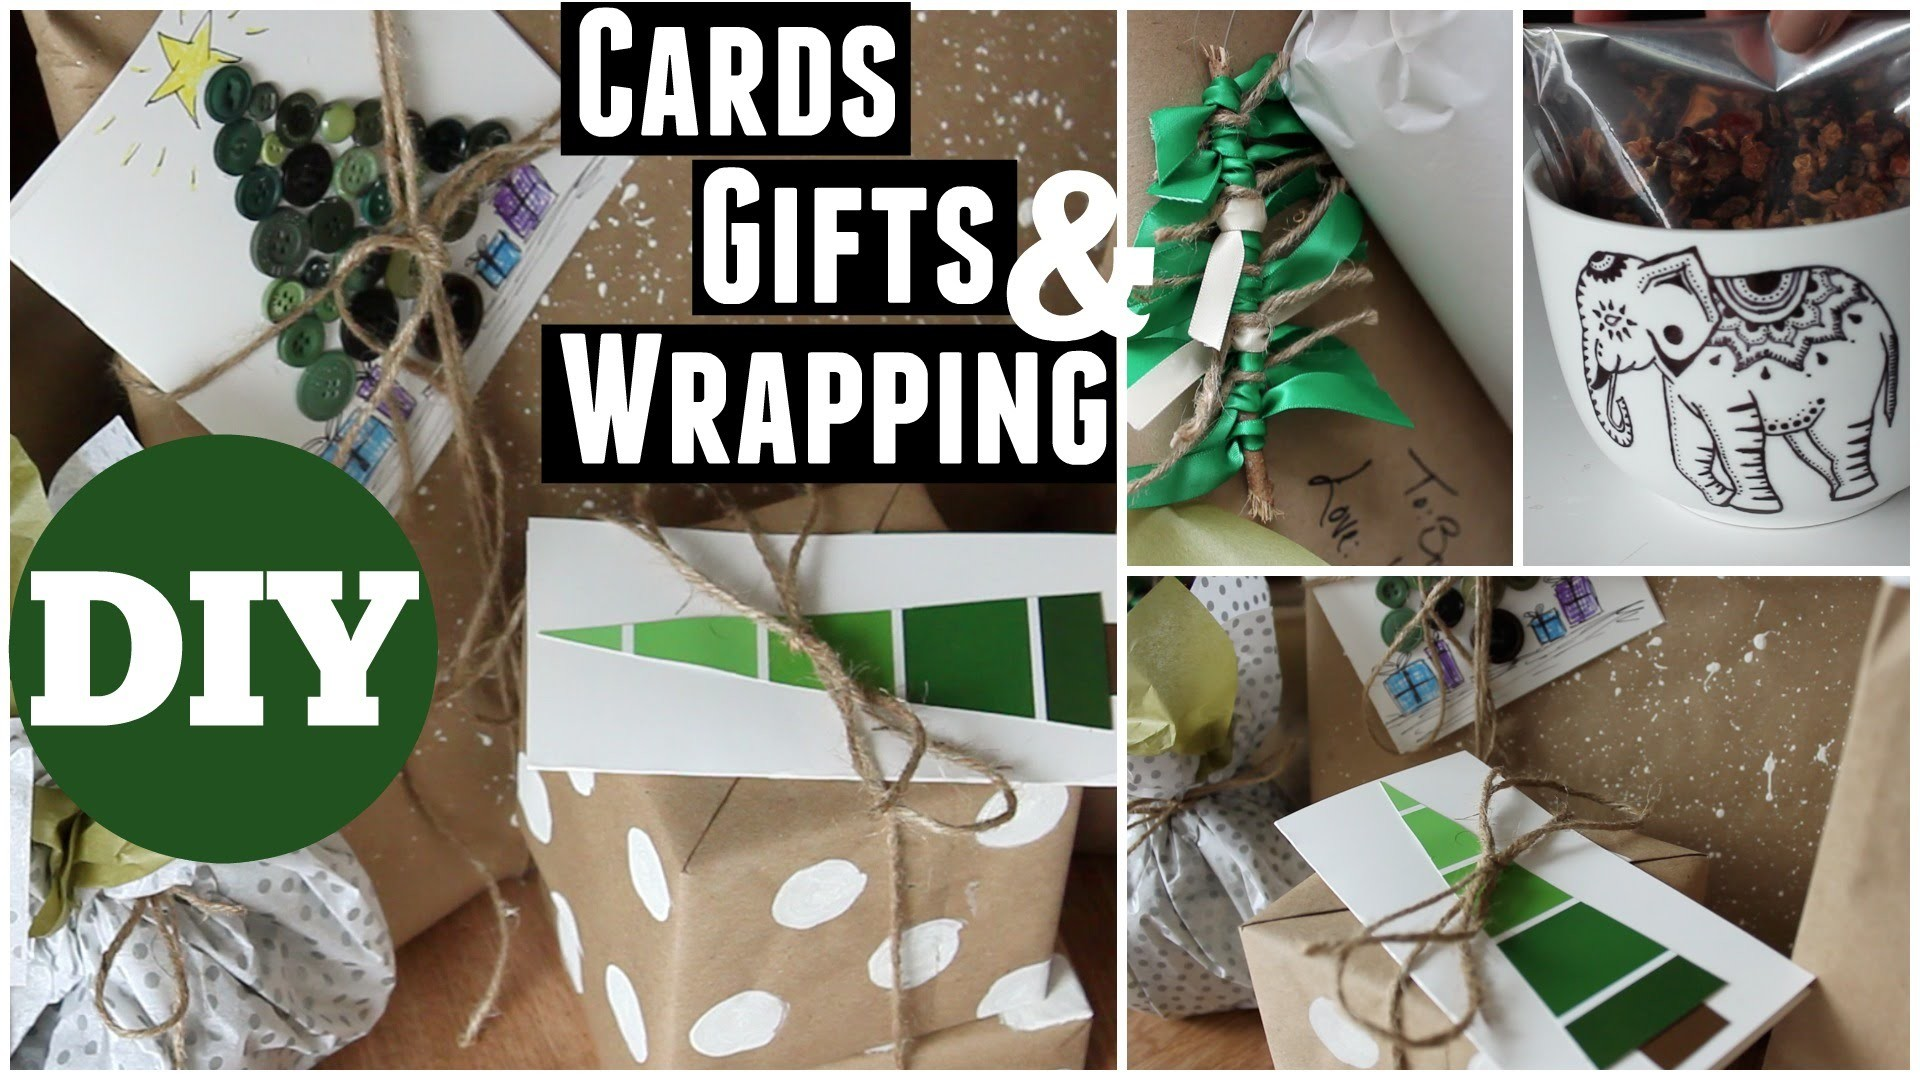 DIY Cards, Gifts, Ornaments & Wrapping